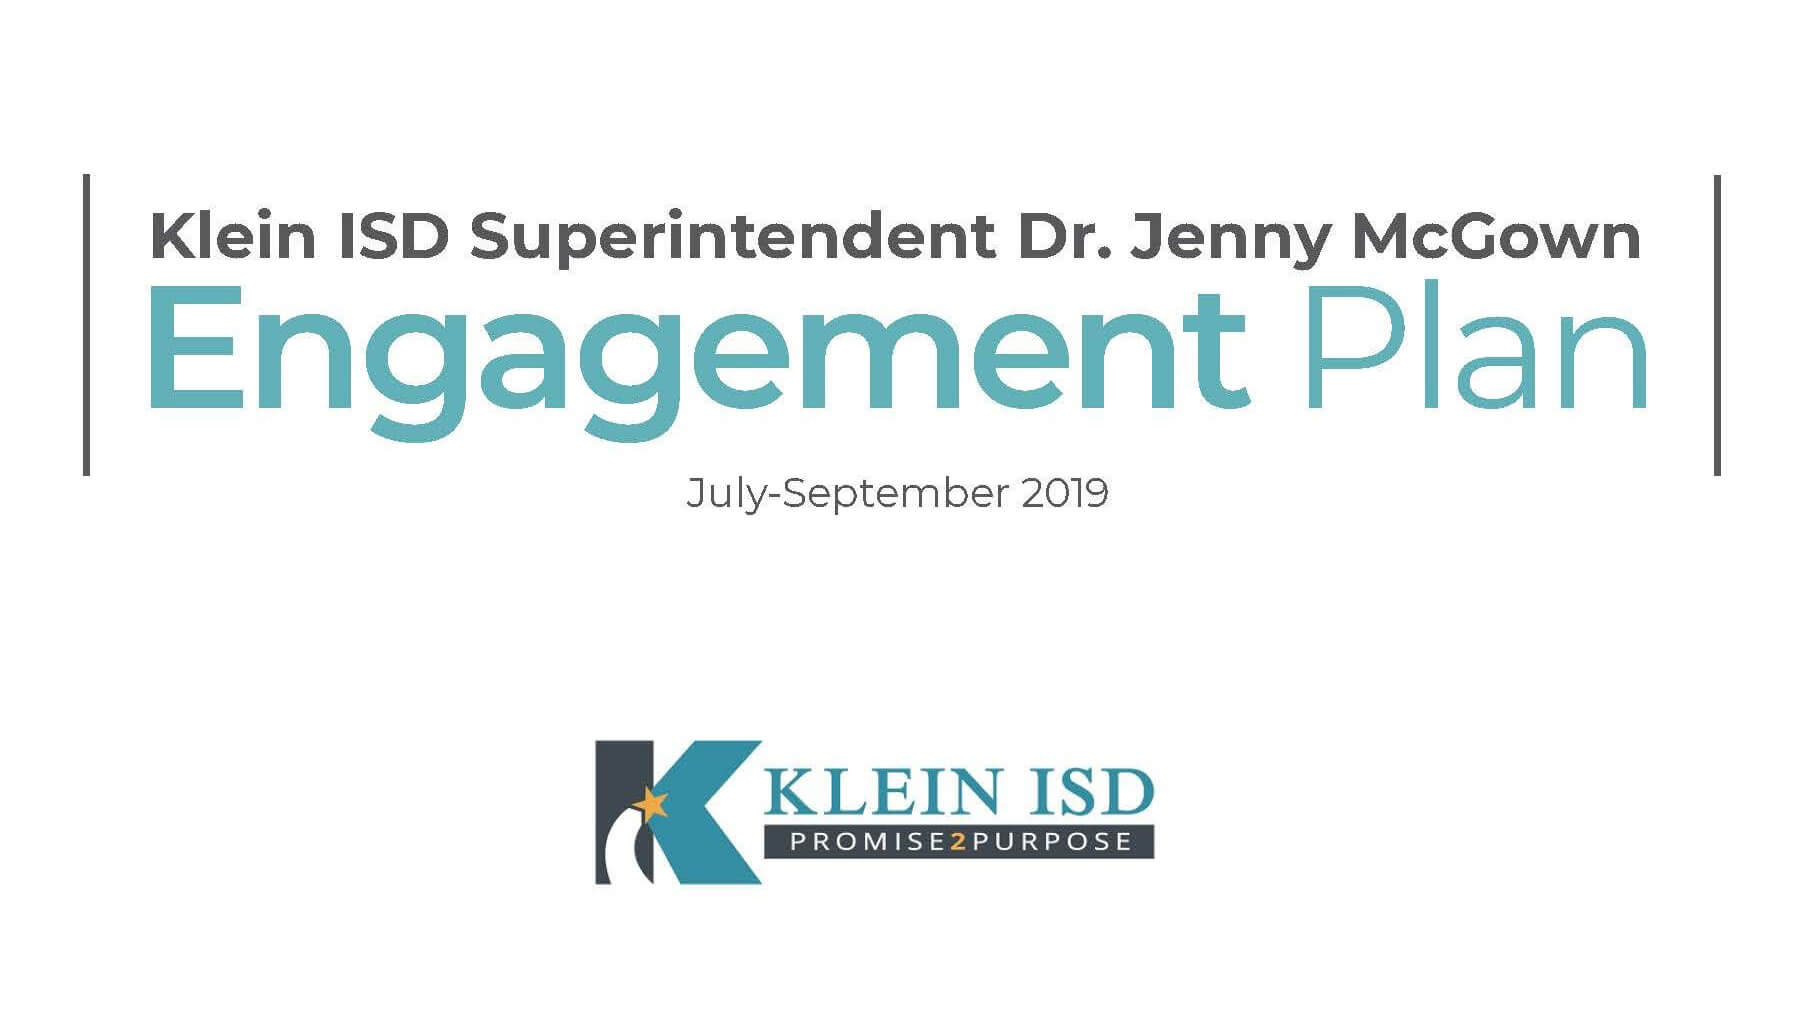 Klein ISD Superintendent Dr. Jenny McGown Releases Engagement Plan Goals